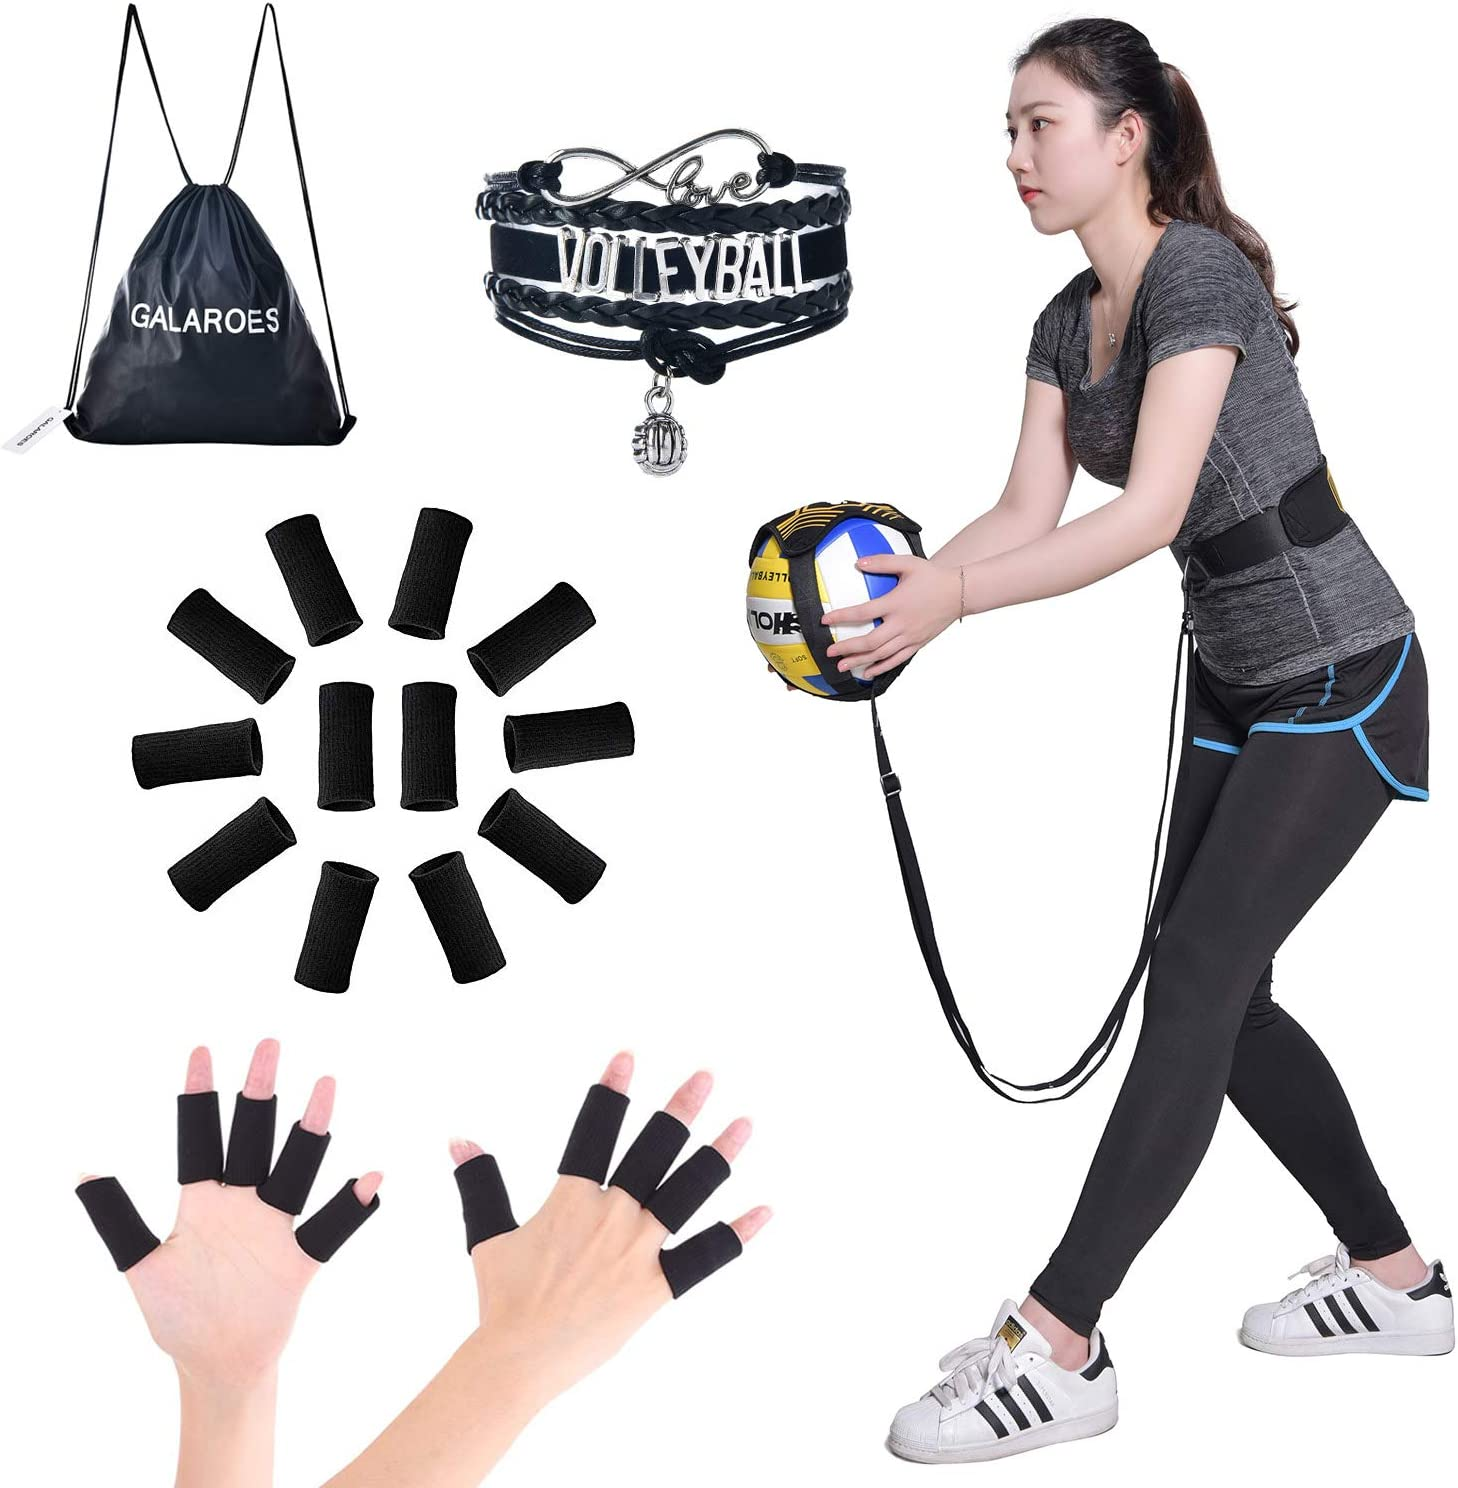 OFFer GALAROES Volleyball Training Equipment Aid Outdoor - Perfect Sale special price Vol